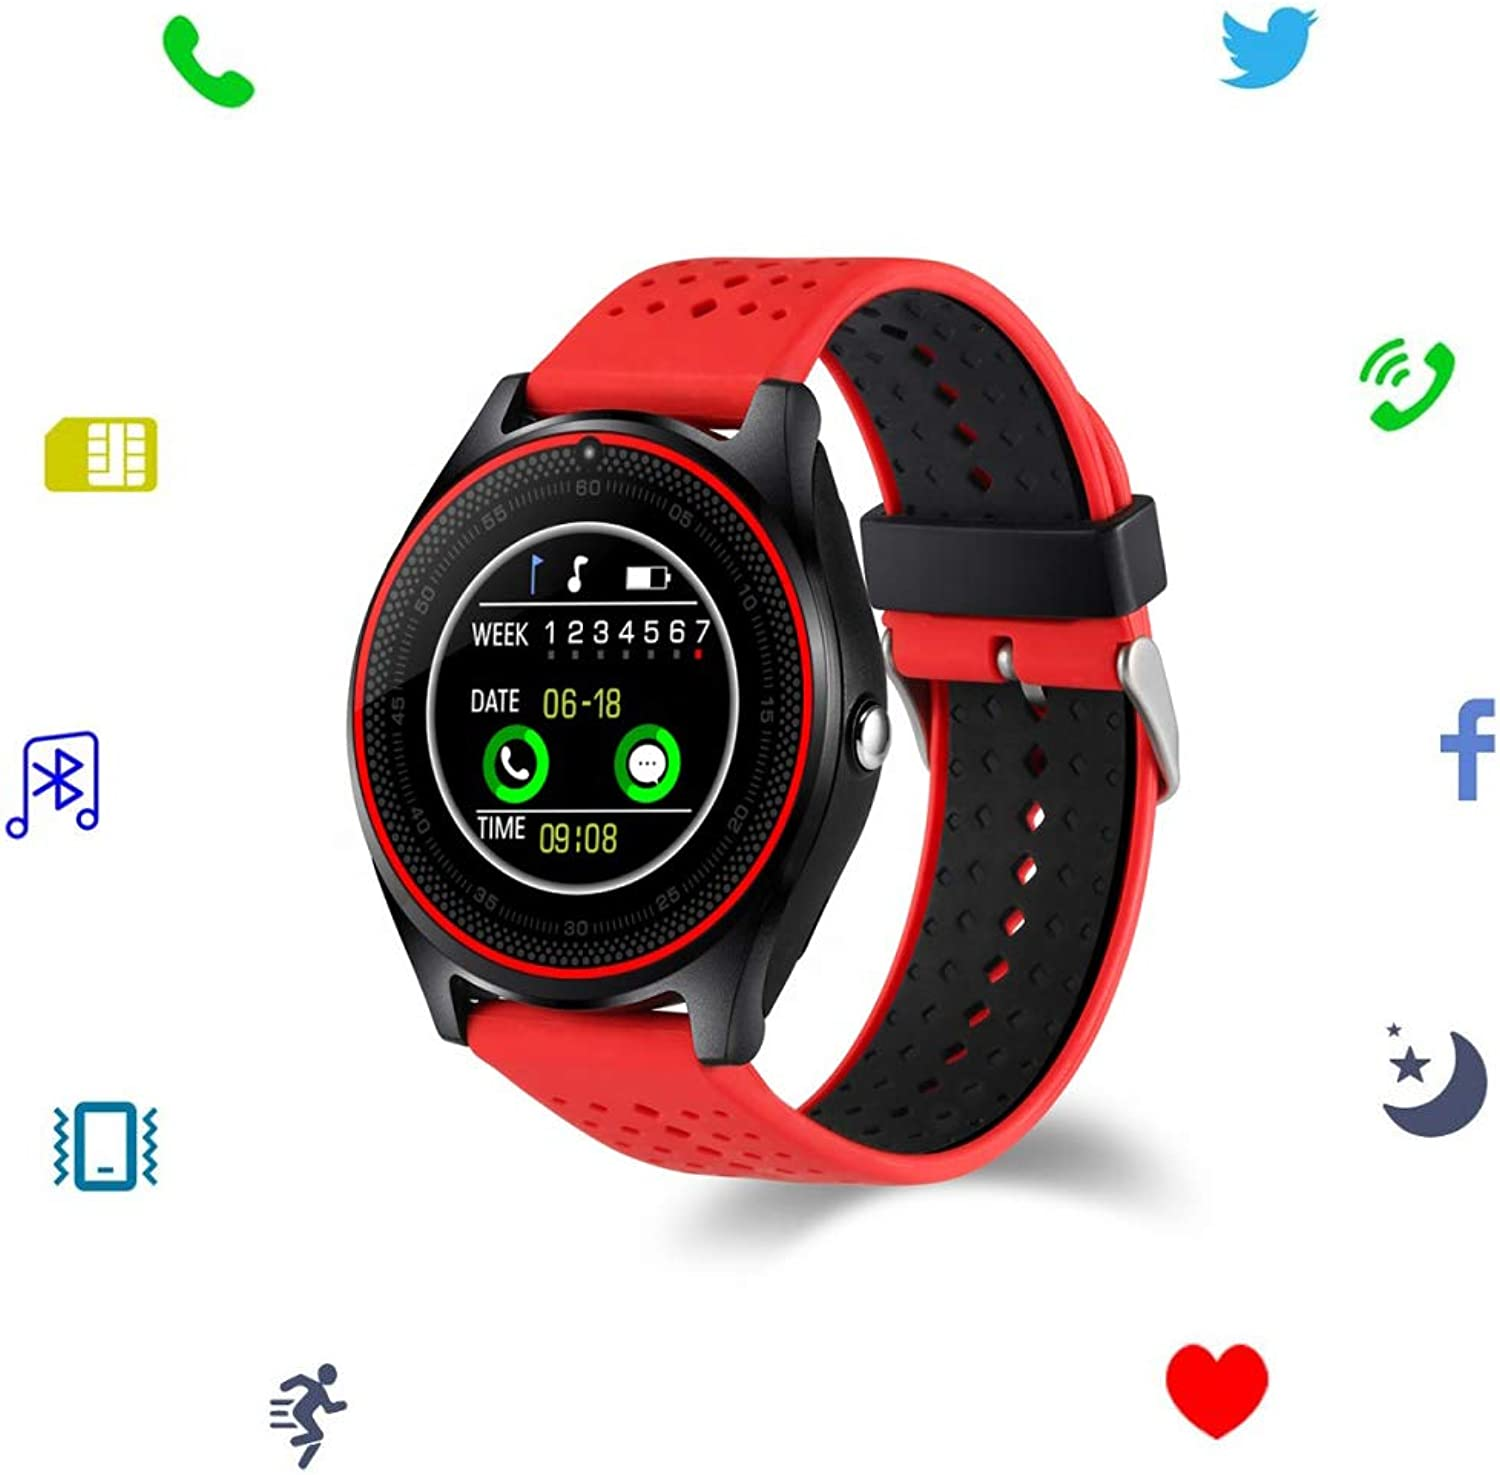 HR Smart Watch with Camera Heart Rate Monitor blueetooth Smartwatch SIM Card Fitness Wristwatch for Android